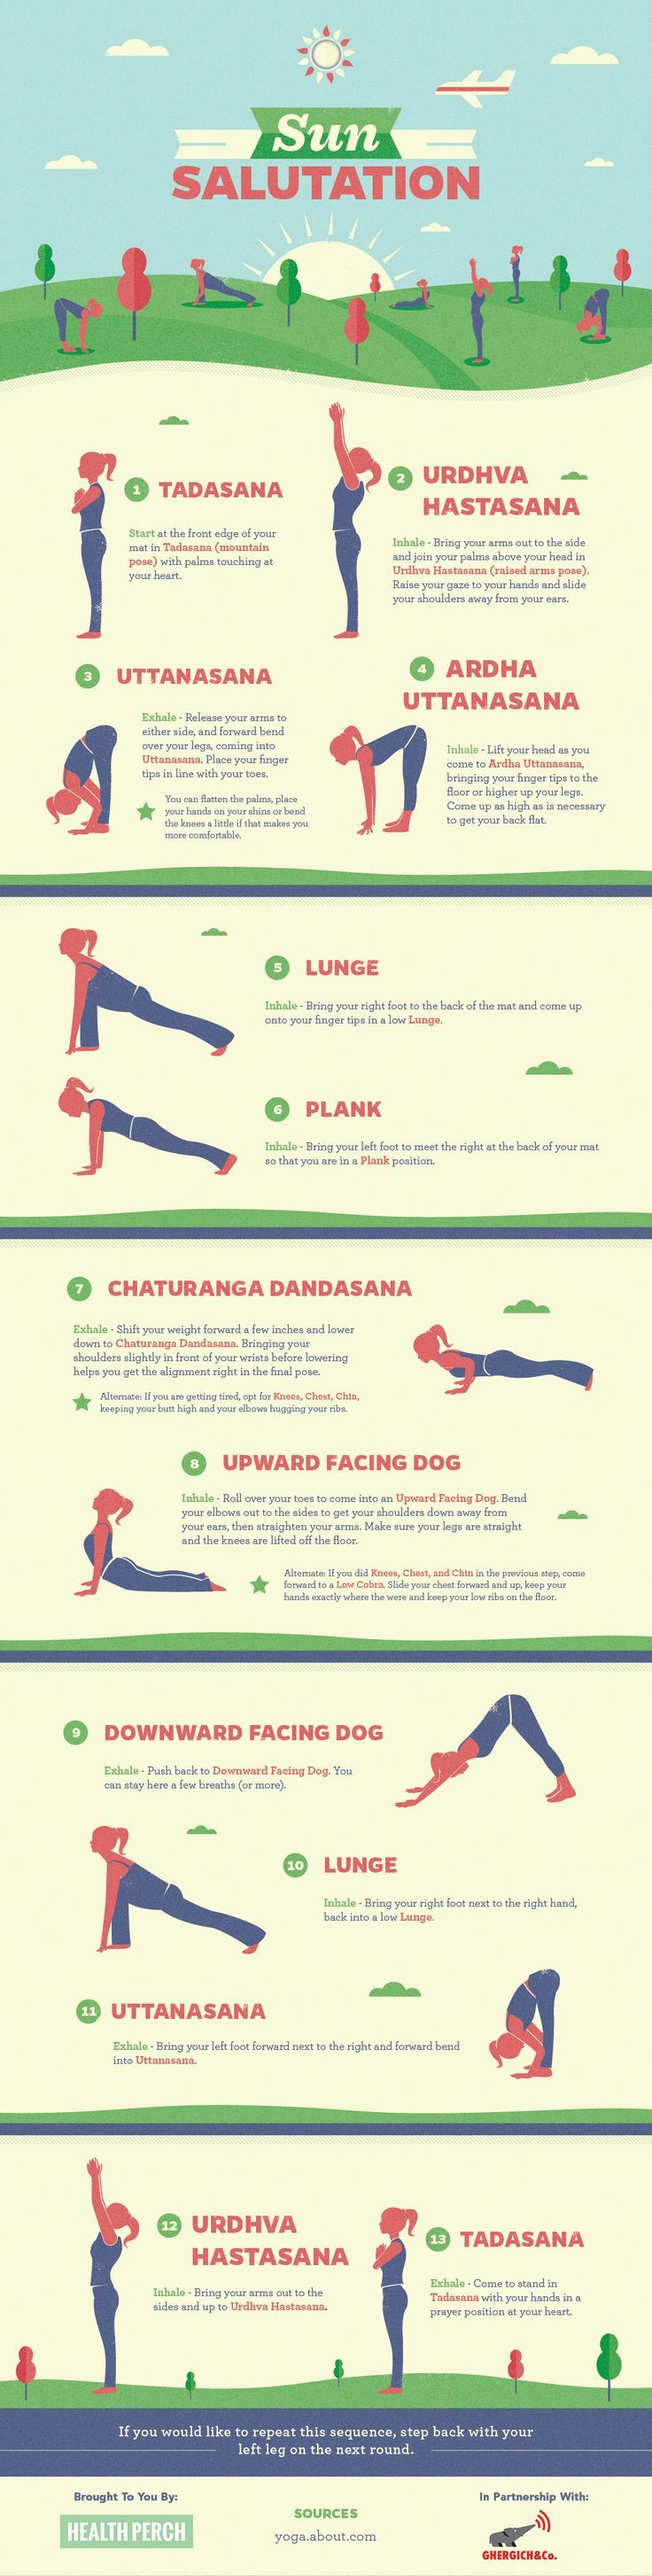 Downward dog pose is useful for strengthening your shoulders